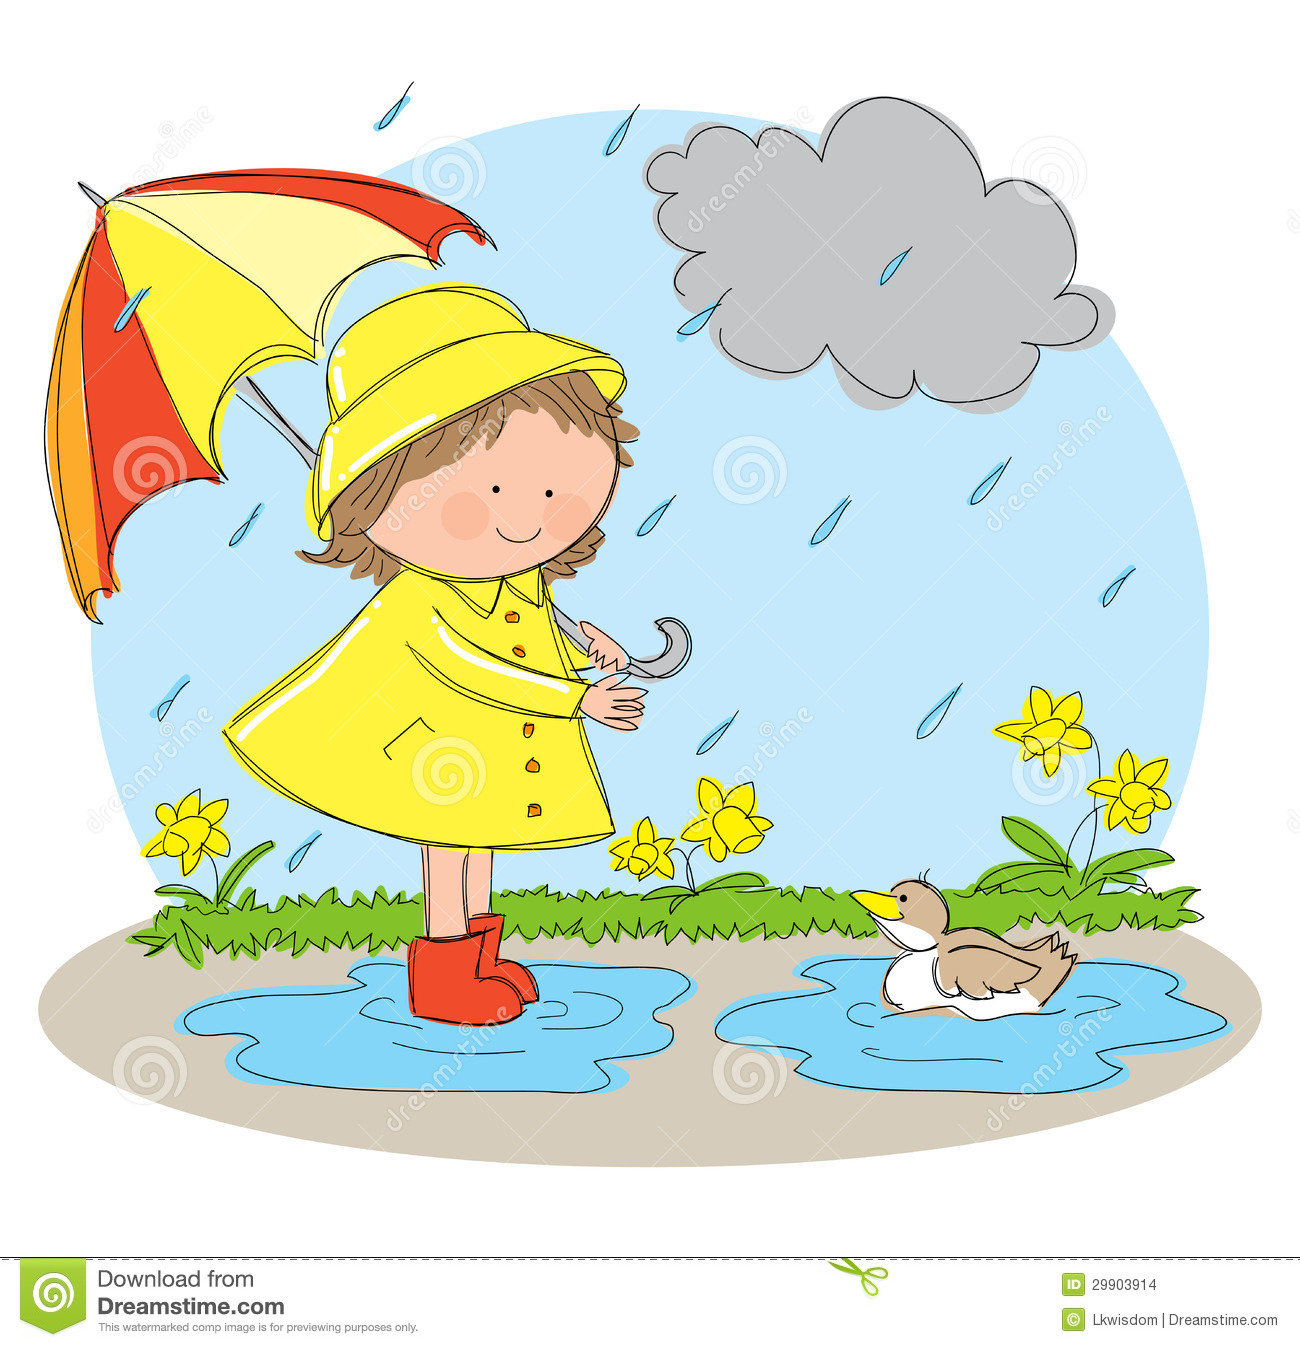 rainy seasons clipart images rainy seasons clipart